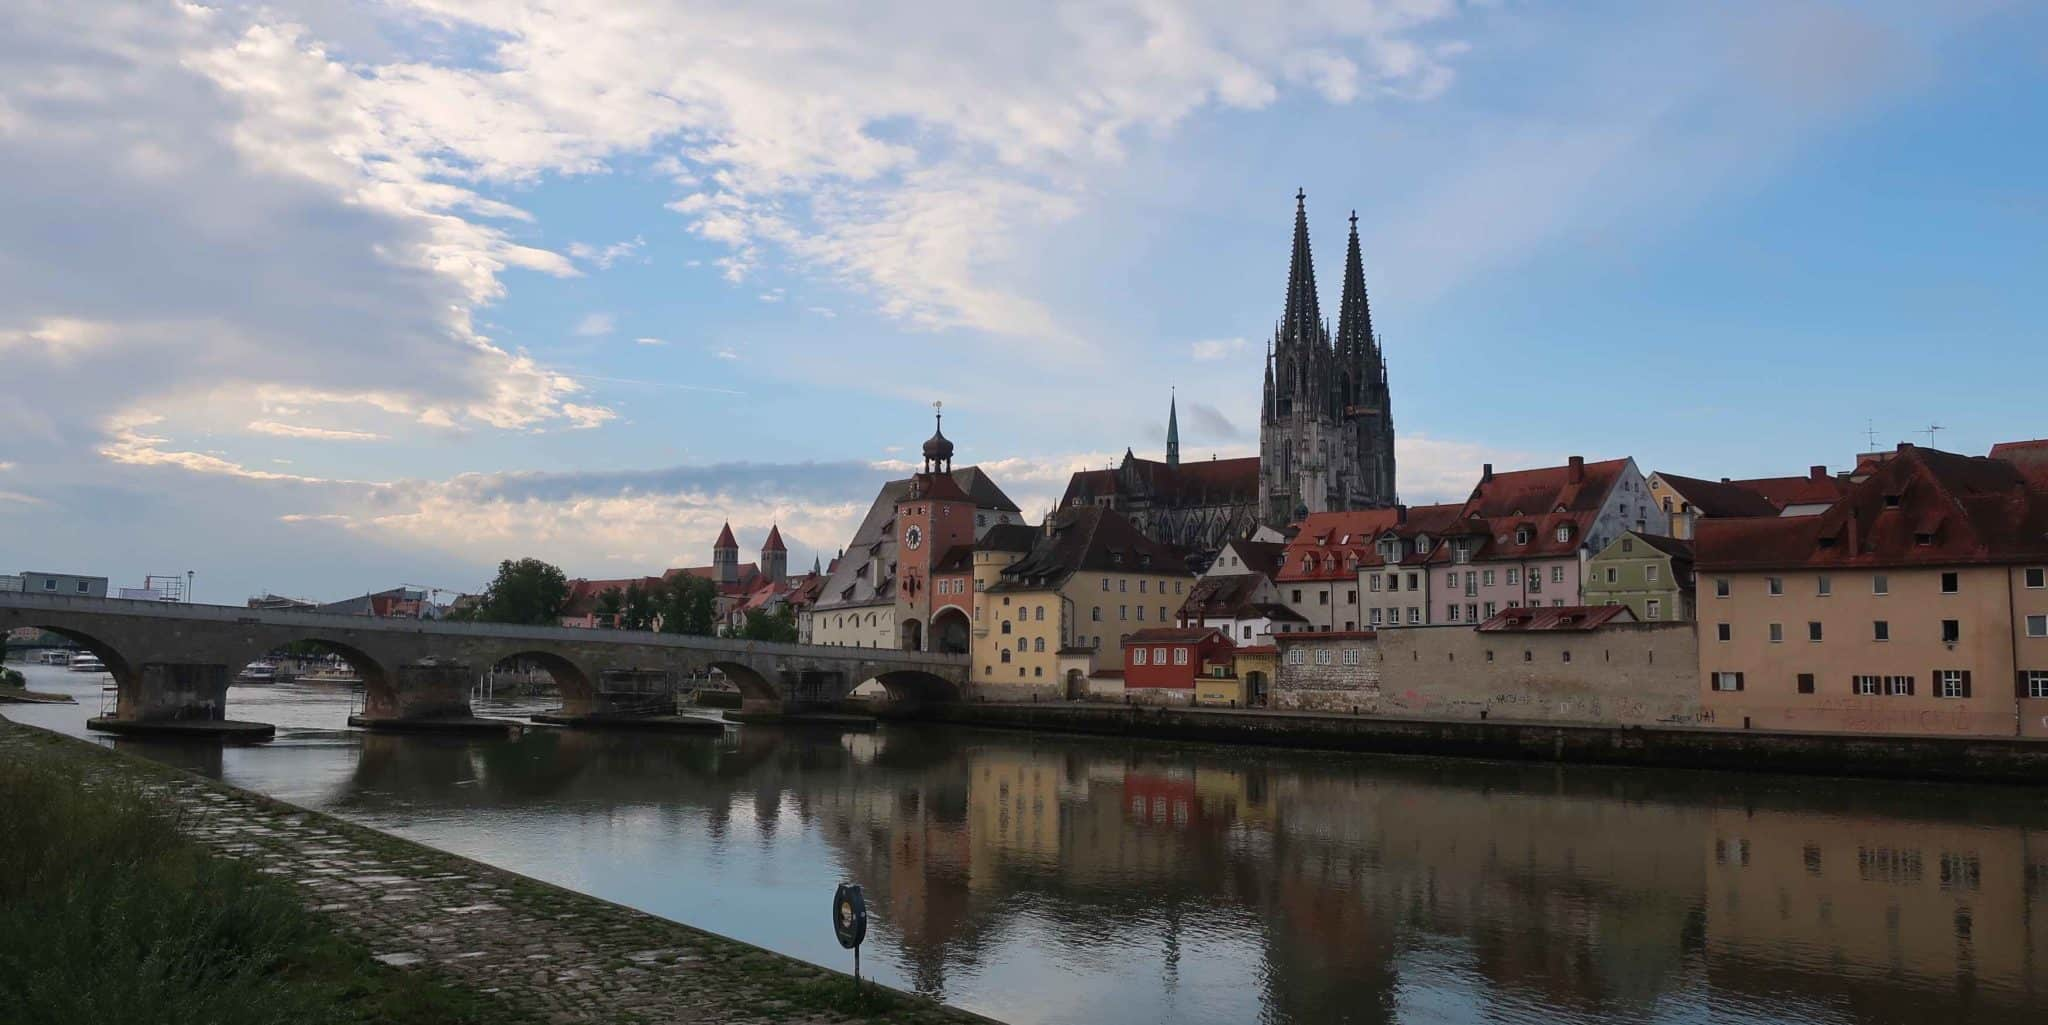 Regensburg City Skyline with the old town